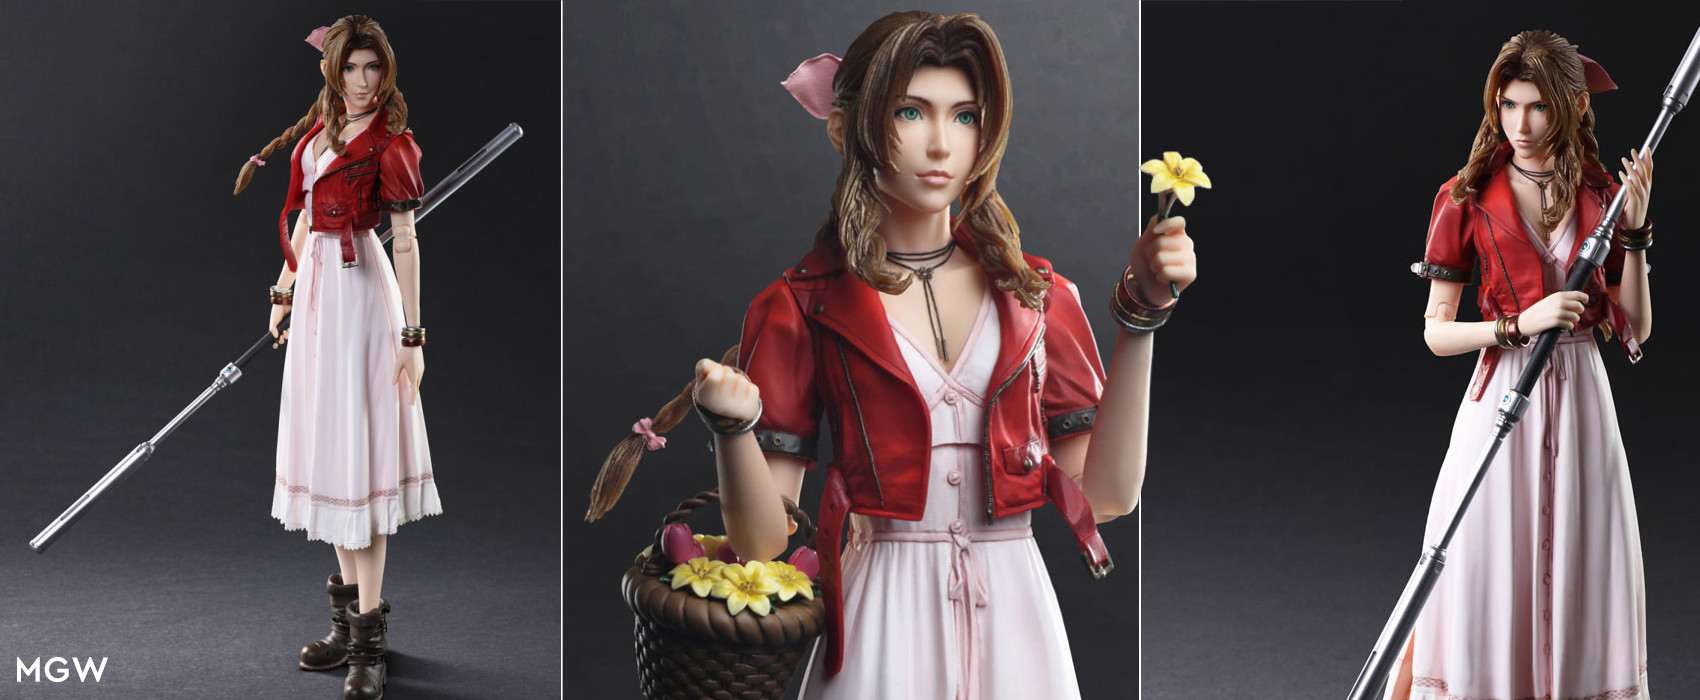 Final Fantasy VII Remake PLAY ARTS KAI Aerith Gainsborough by SQUARE ENIX